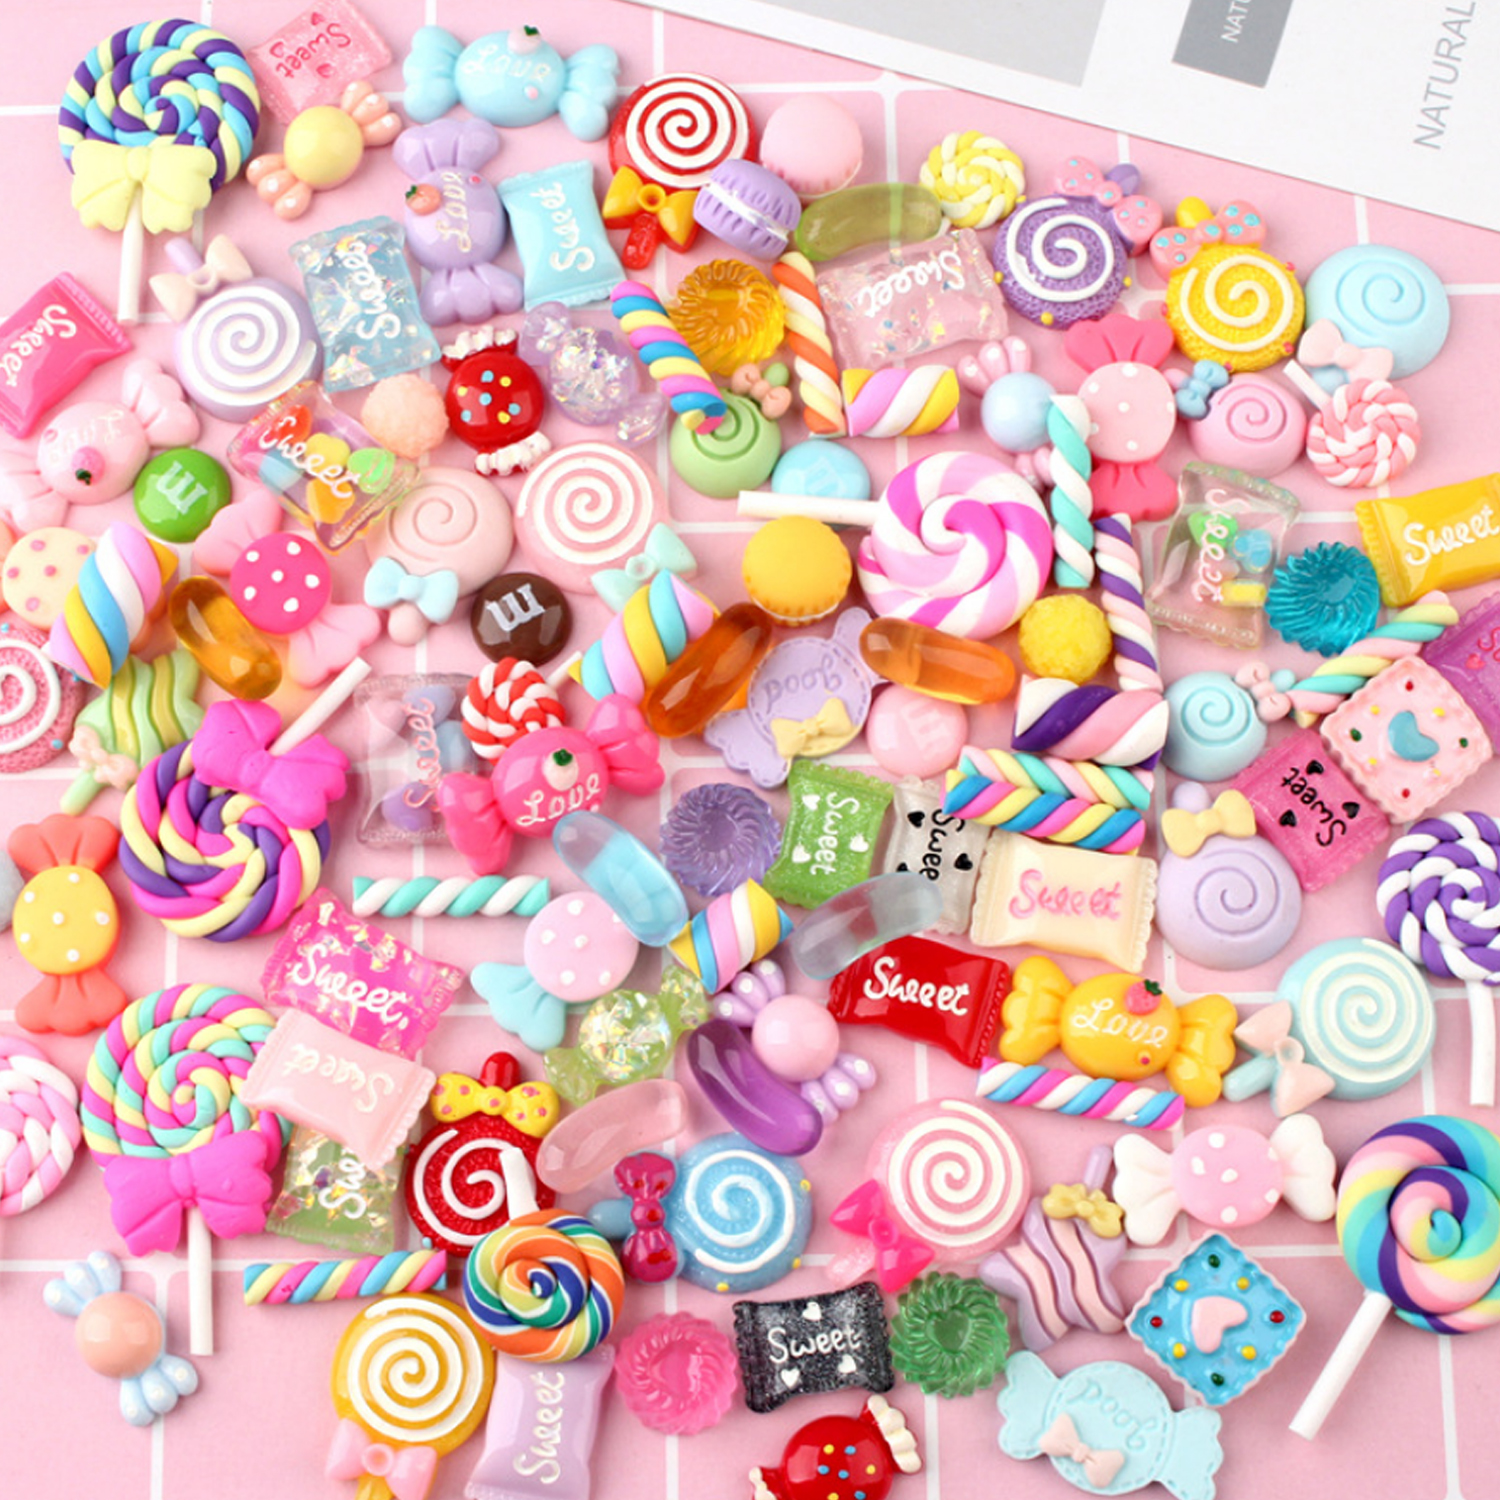 Kids 100PCS Cute Lovely Colorful DIY Resin Candy Slime Dessert Sweets Sugar Kitchen Food Pretend Toy Scrapbooking Handcrafts Toy